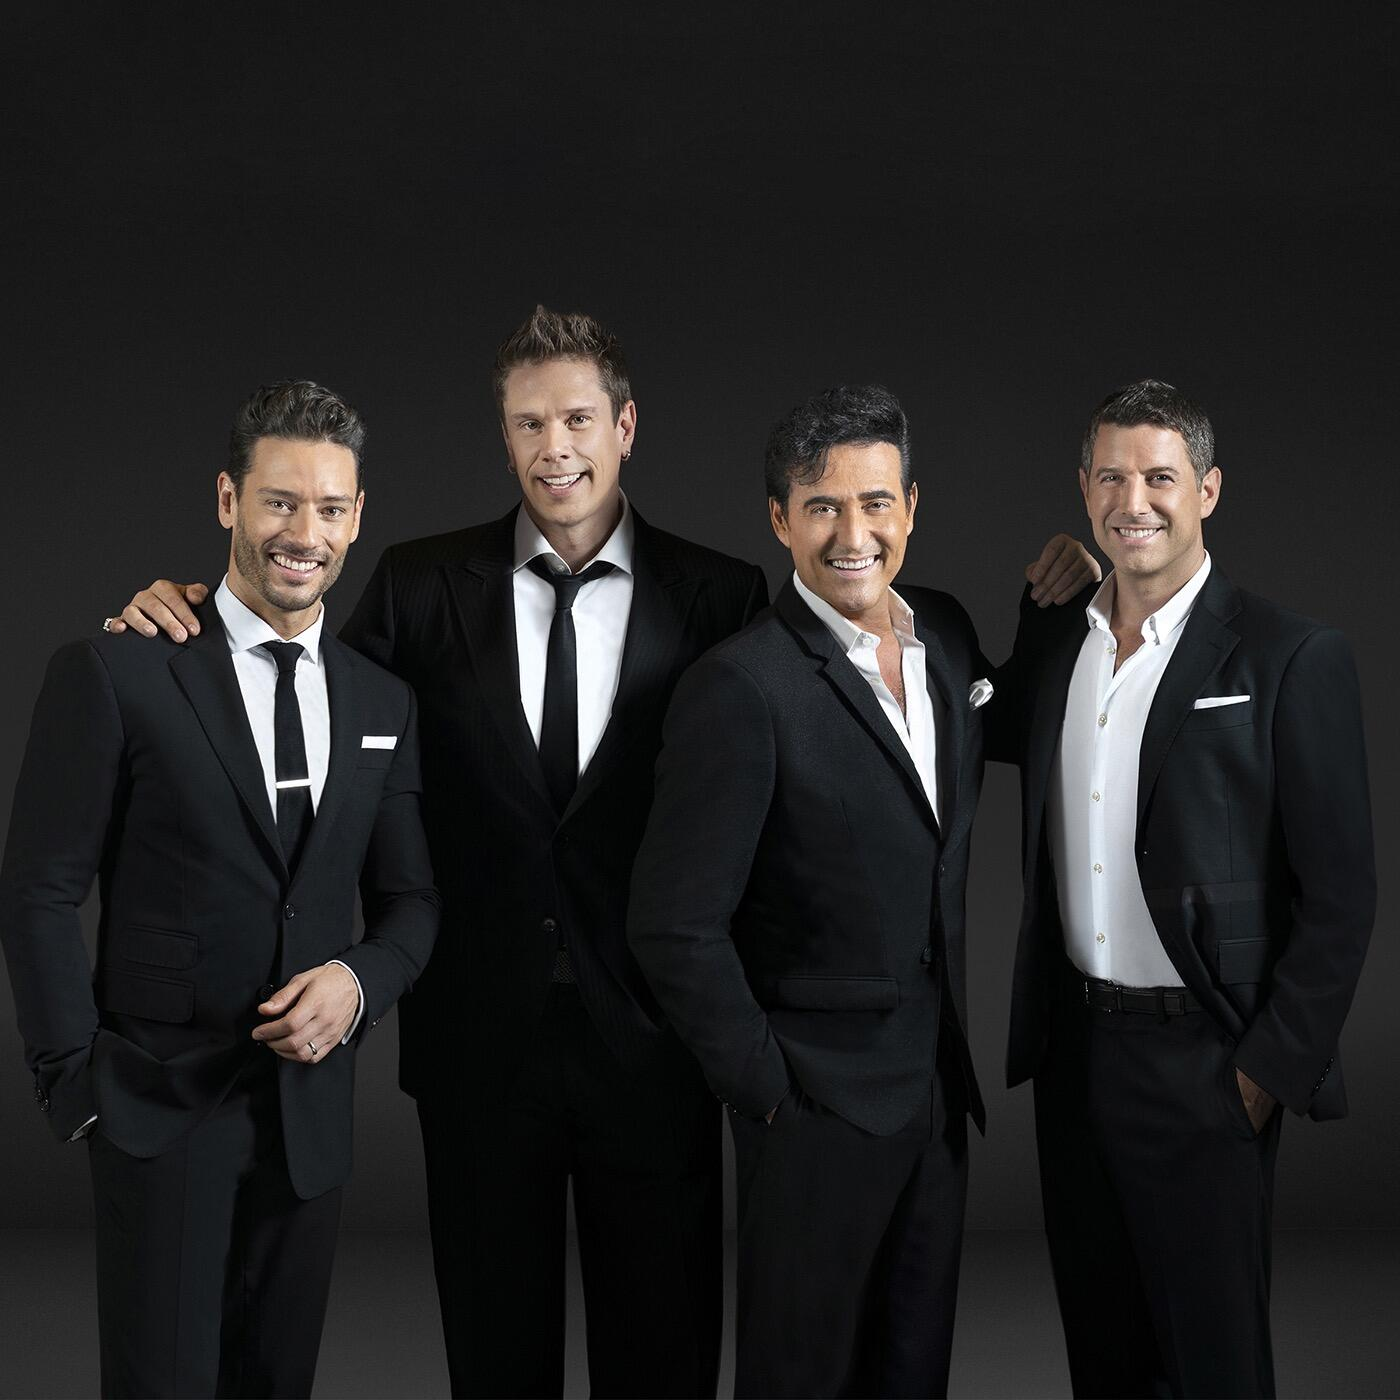 Il divo radio listen to free music get the latest info iheartradio - Il divo all by myself ...